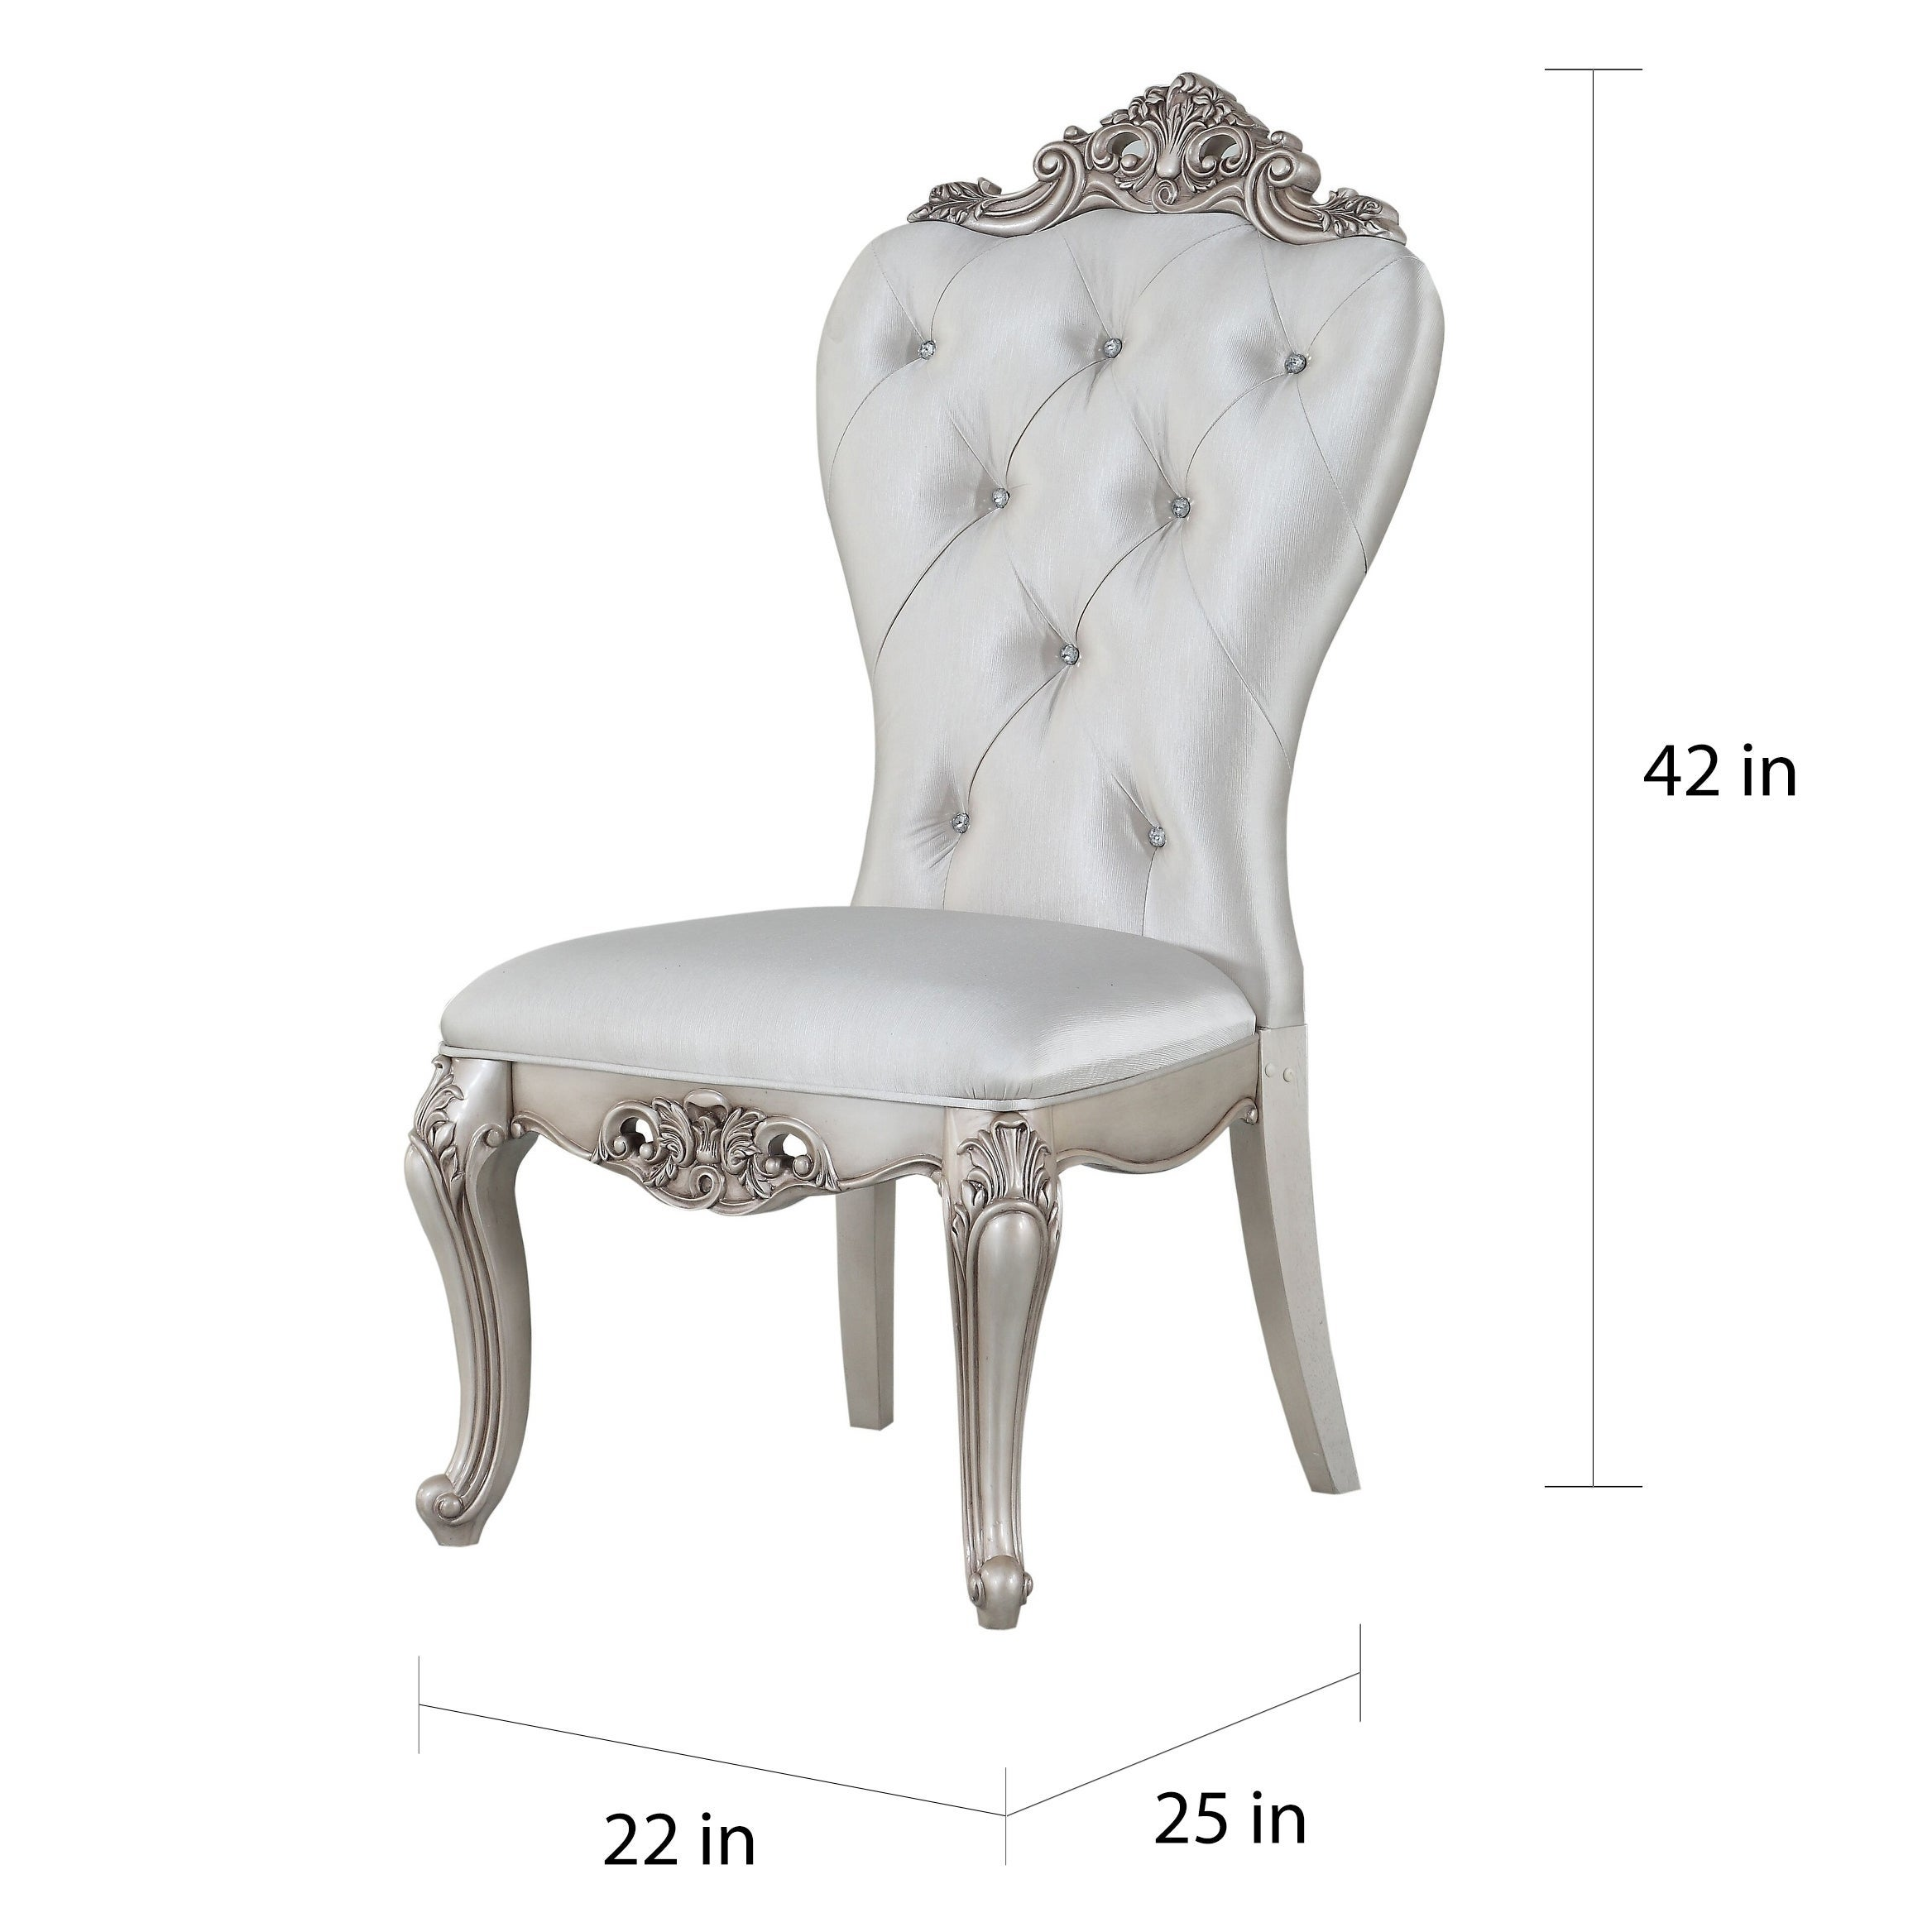 LARGE ARMCHAIR Wing High Back FABRIC Queen Anne Style Chair Grey Beige DARK GREY